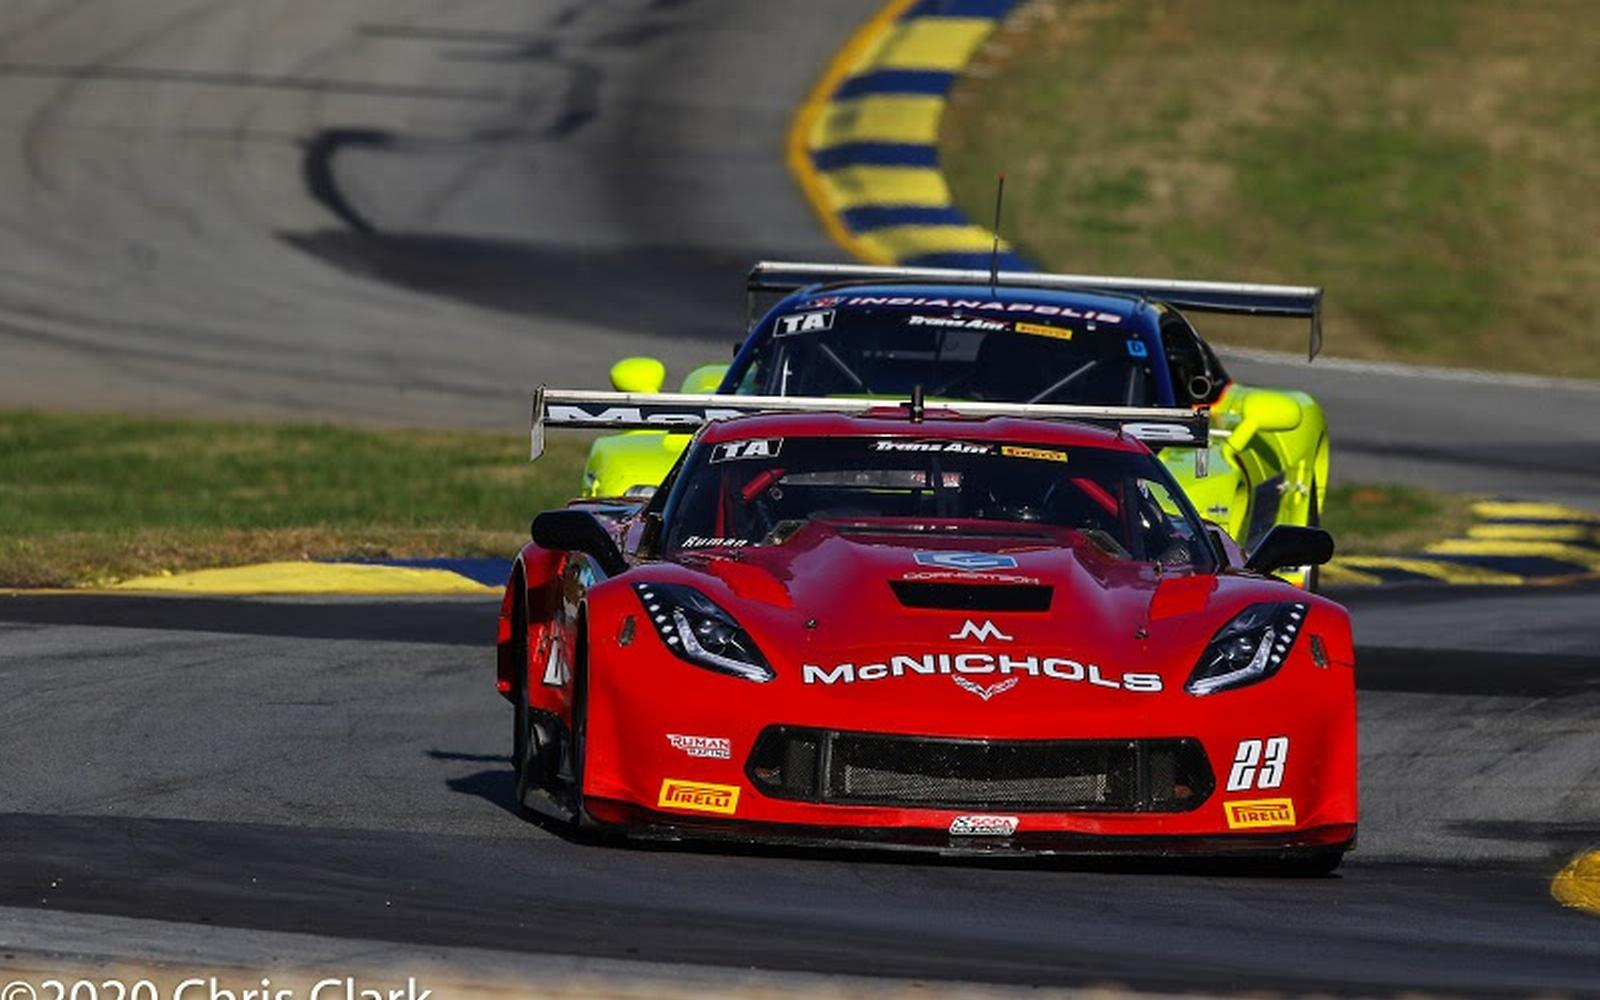 Ruman Finishes 4th Overall in 2020 TA Trans Am Championship After Scoring 5th and 7th Place Finishes at Road Atlanta Double